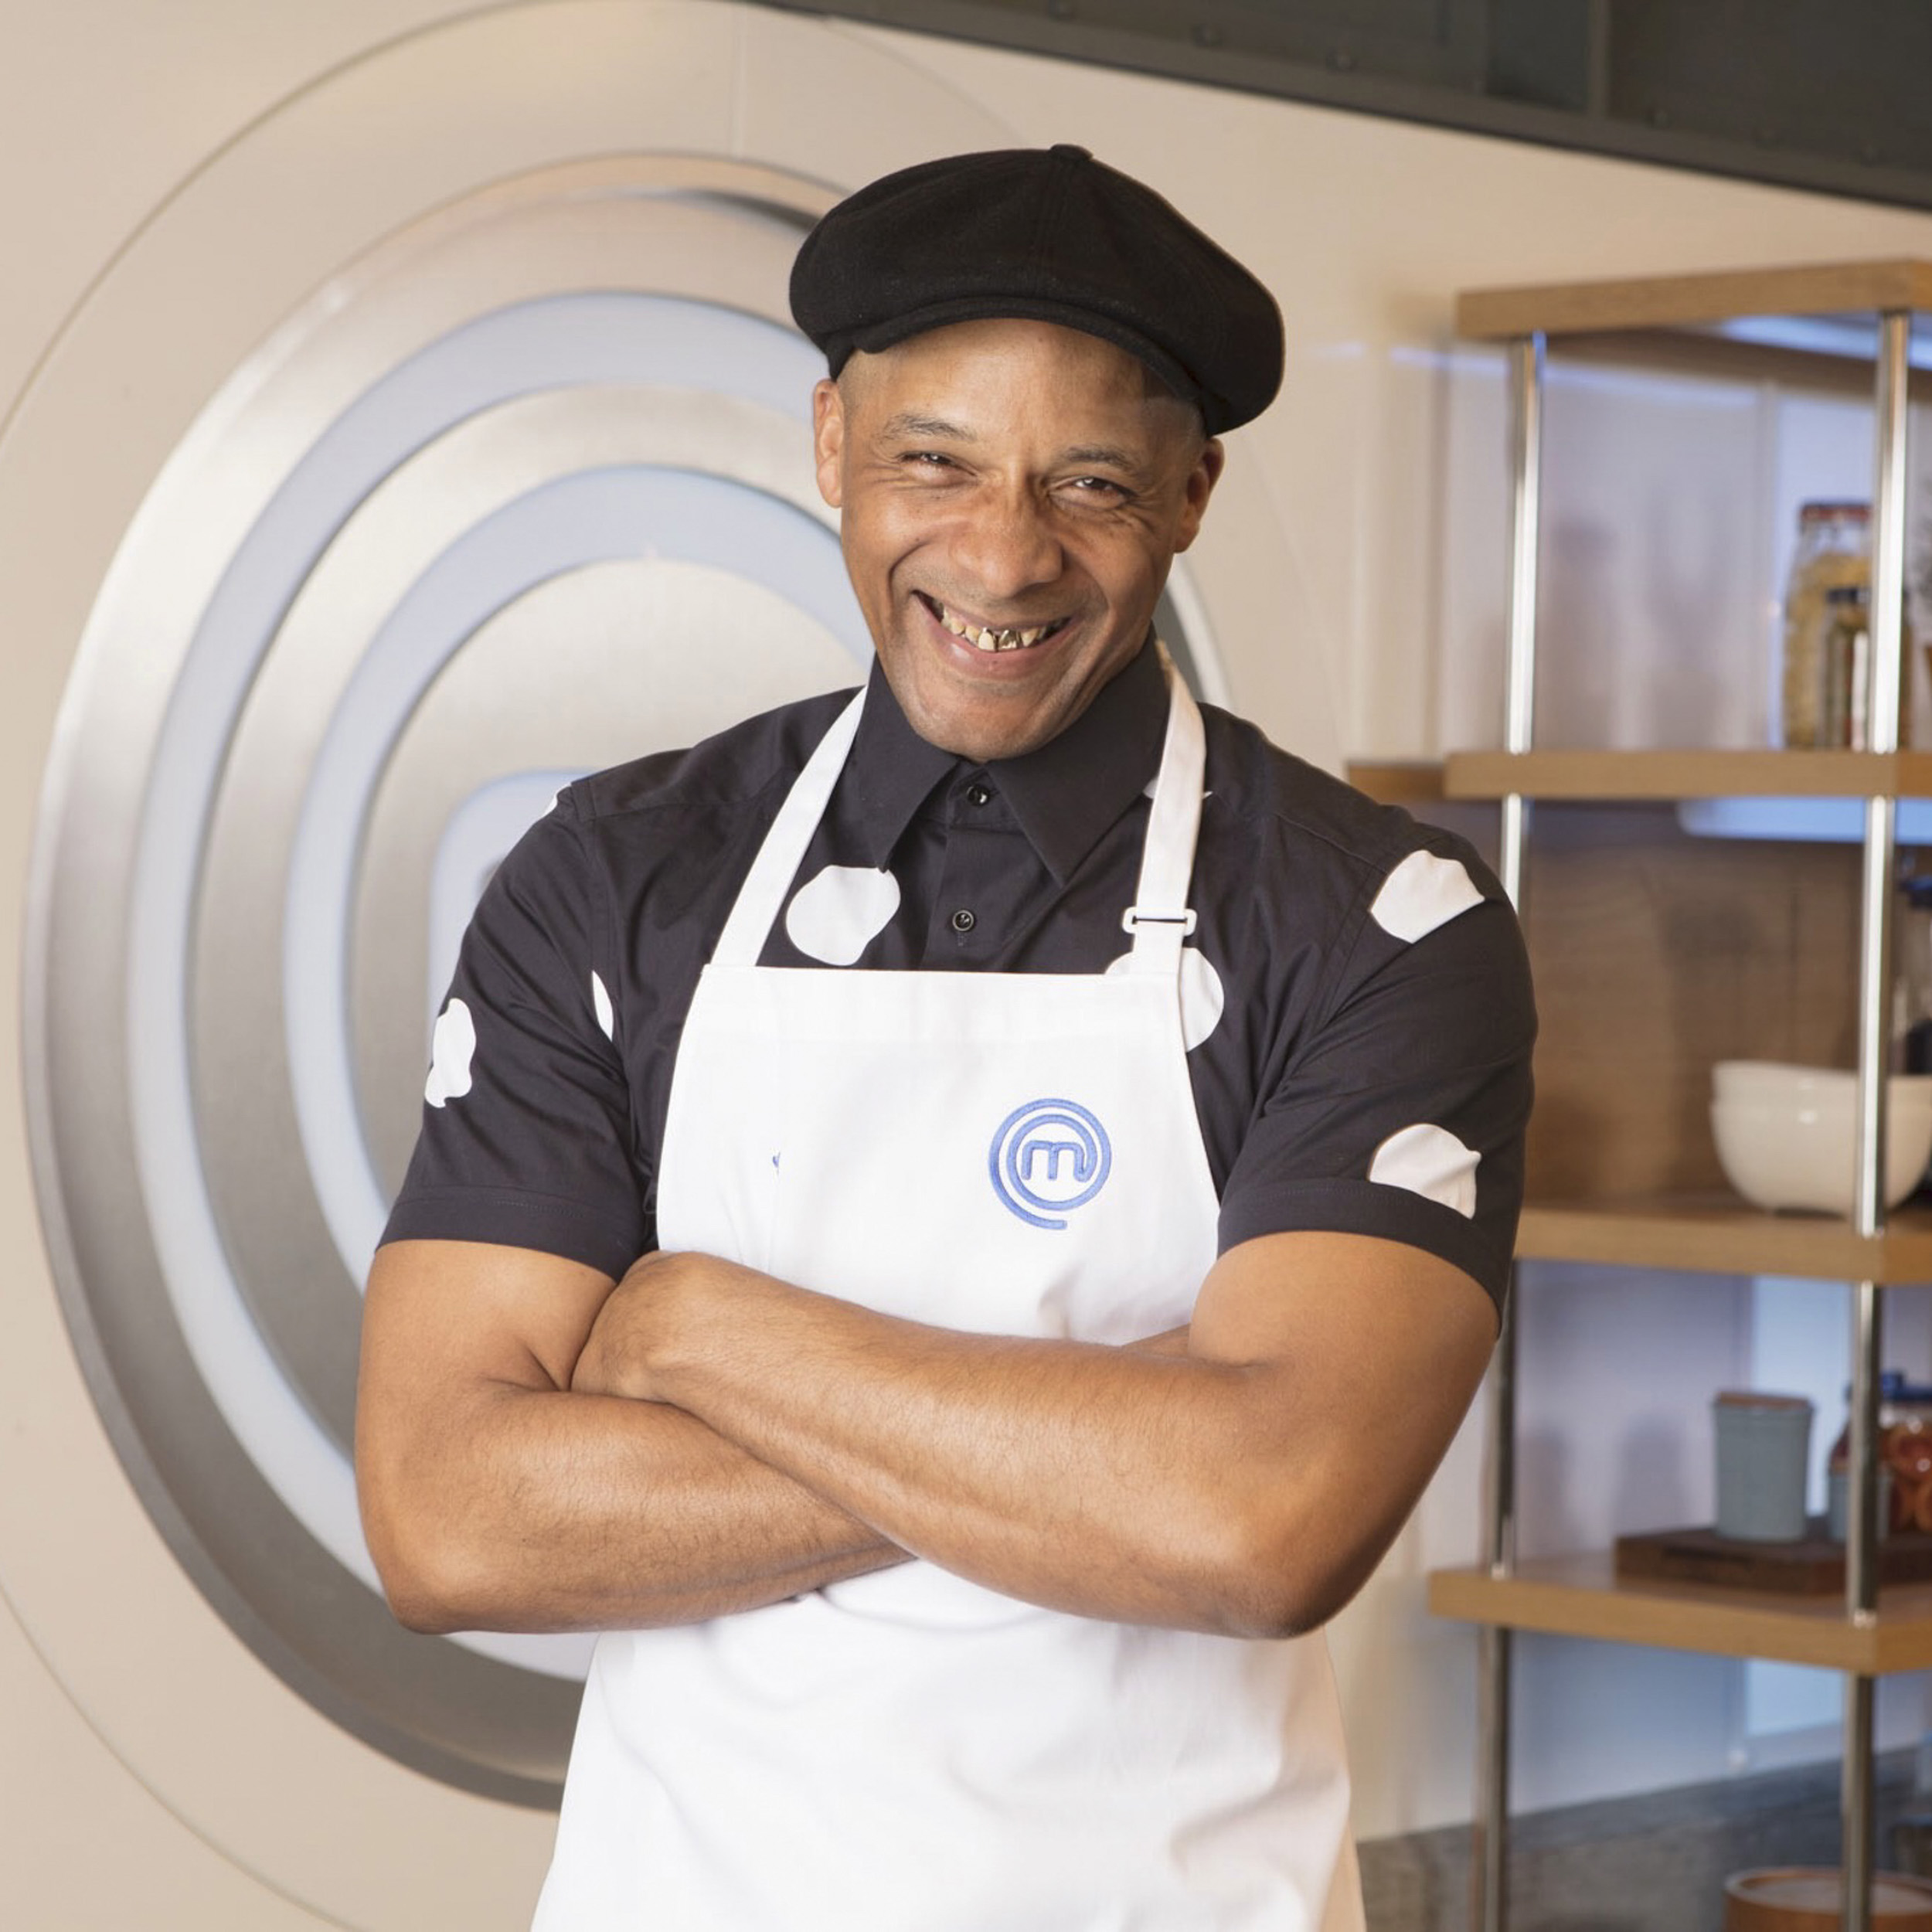 Celebrity Masterchef - I joined Celebrities from all over Britain and our skills got tested in the MasterChef kitchen; I did my utmost and stuck in there for 3 episodes competing with the finest in this coveted cookery competition - a real challenge that I enjoyed.